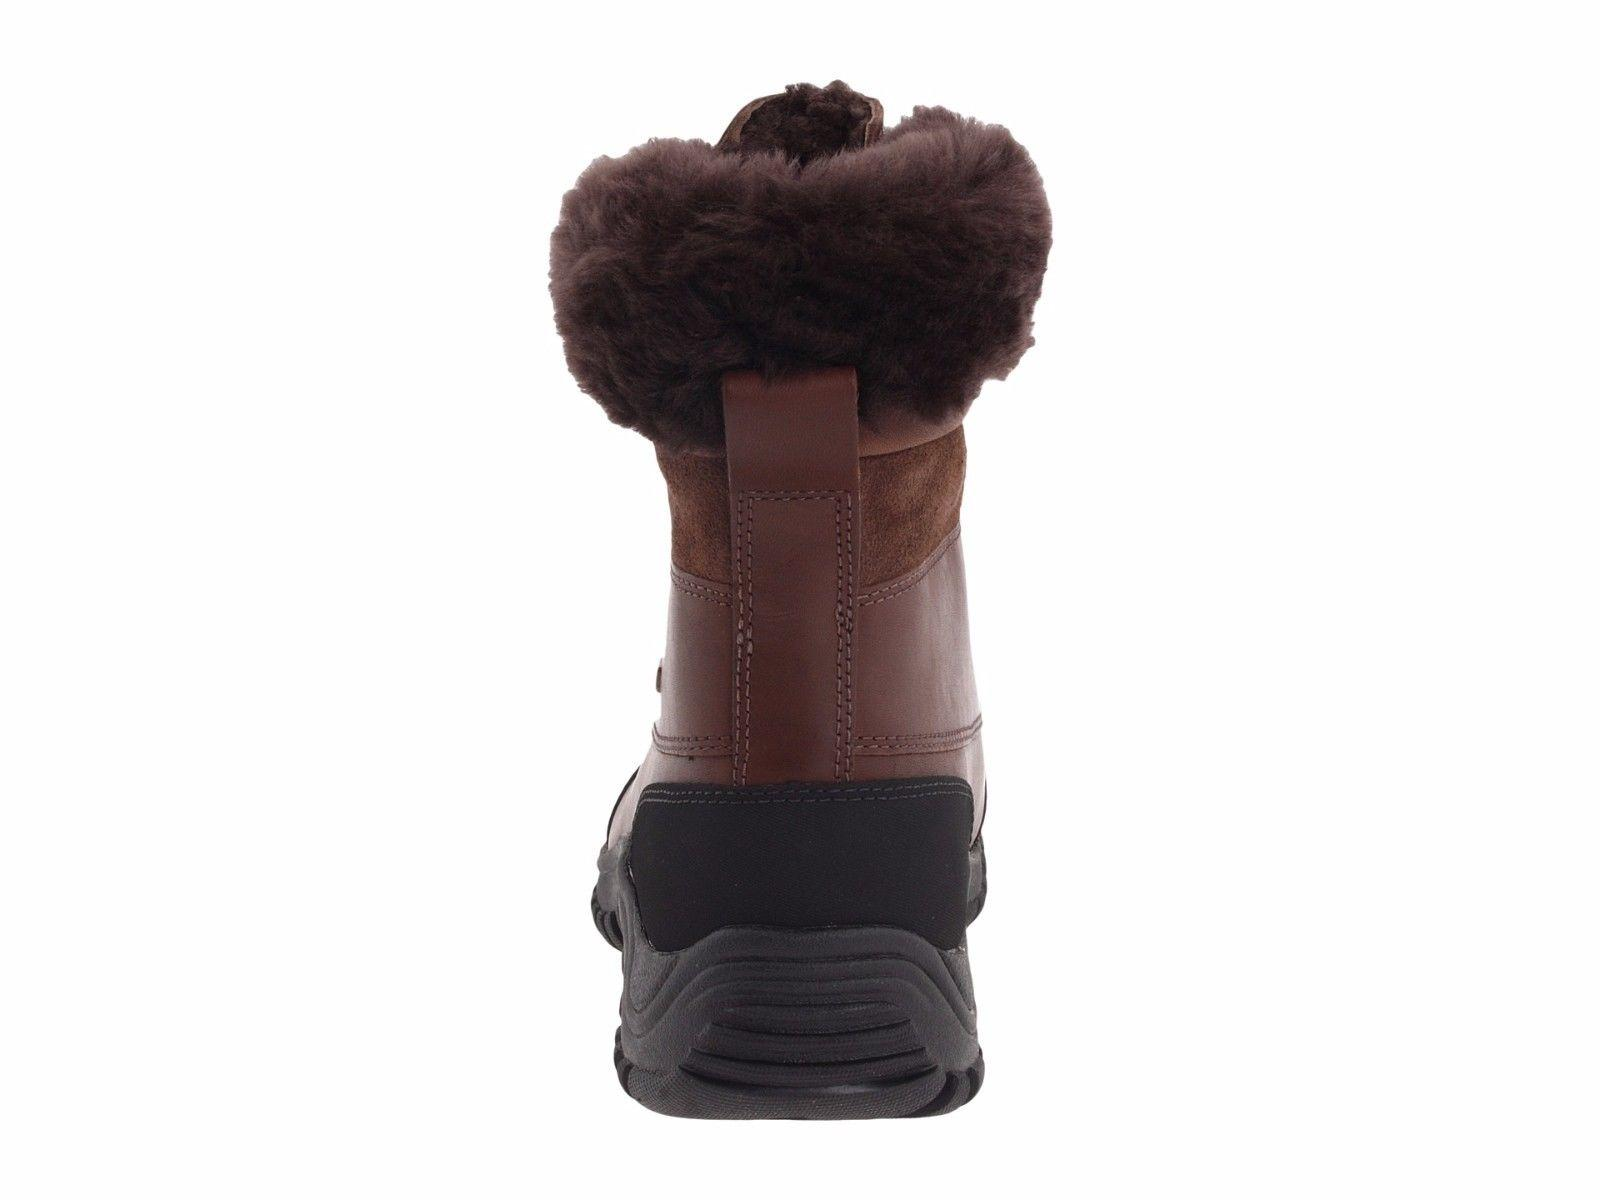 UGG Australia For Her 5446 Size 9 Obsidian Boots